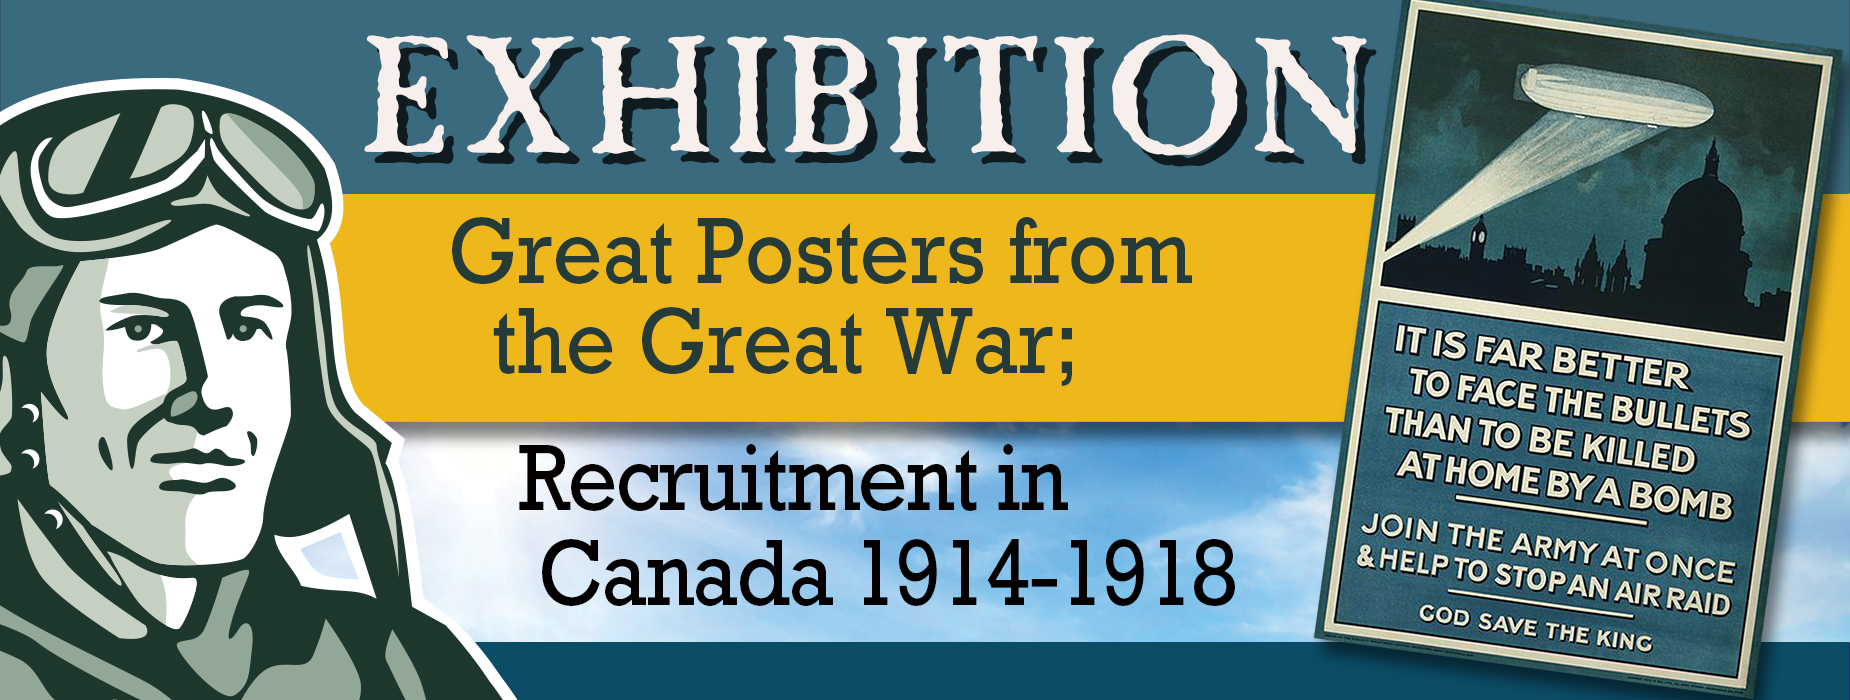 Poster for - Exhibition - Great Posters from the Great War; Recruitment in Canada 1914-1918